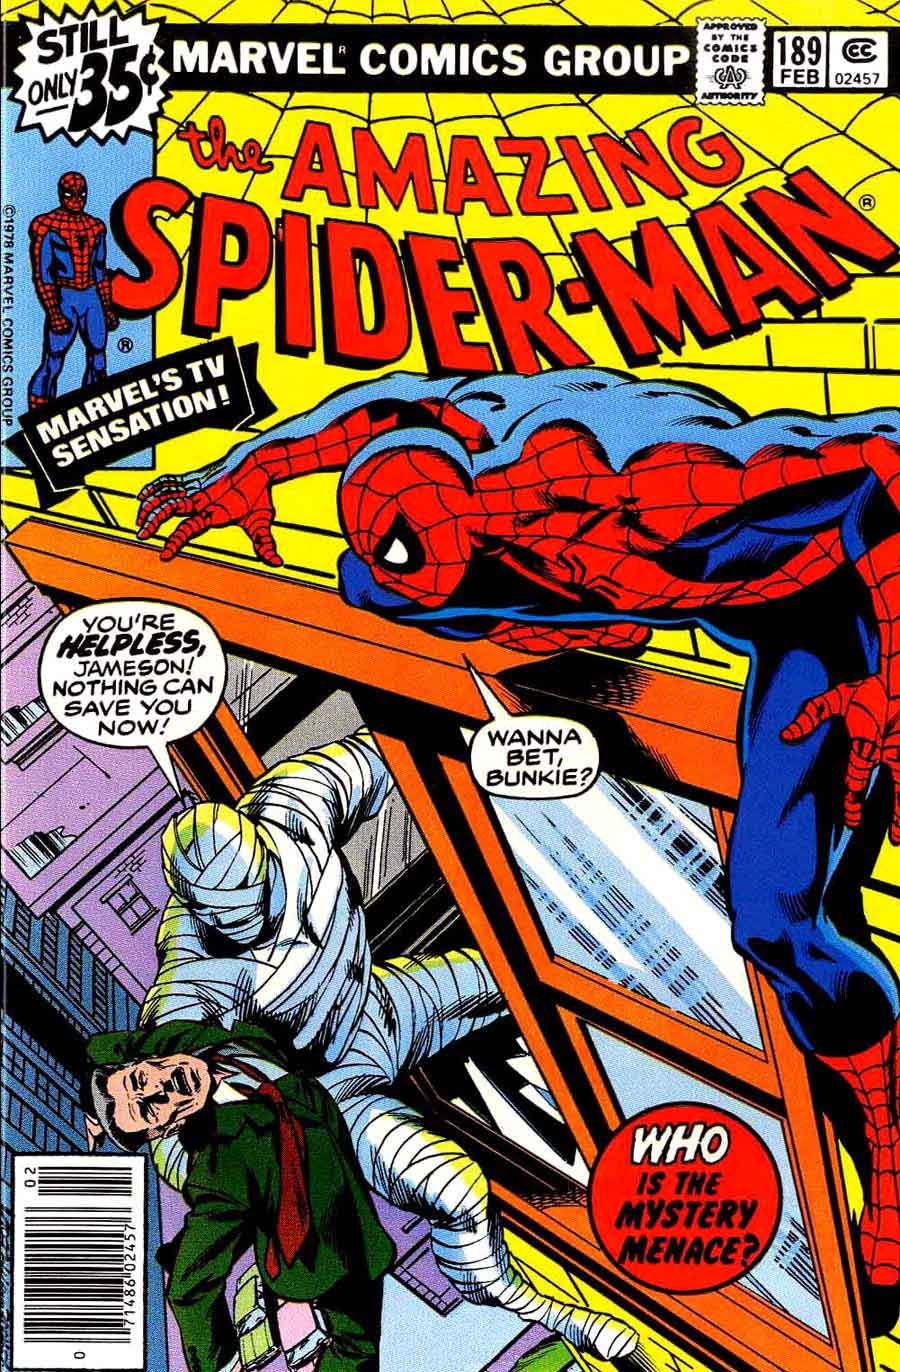 Amazing Spider-Man v1 #189 marvel comic book cover art by John Byrne